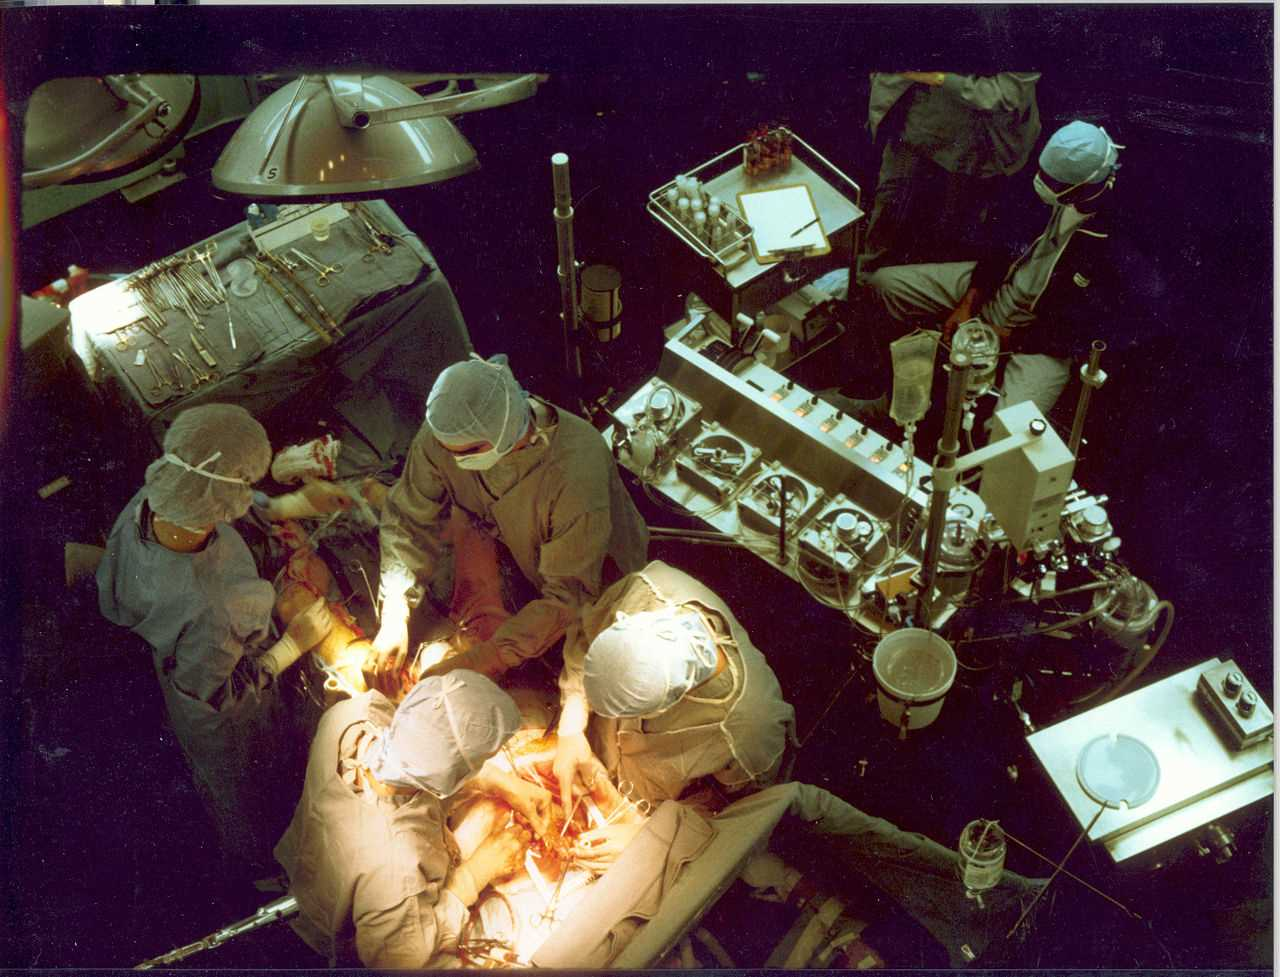 Early in a coronary artery bypass operation, during vein harvesting from the legs (left of image) and the establishment of cardiopulmonary bypass by placement of an aortic cannula (bottom of image). The perfusionist and heart-lung machine are on the upper right. The patient's head (not seen) is at the bottom.